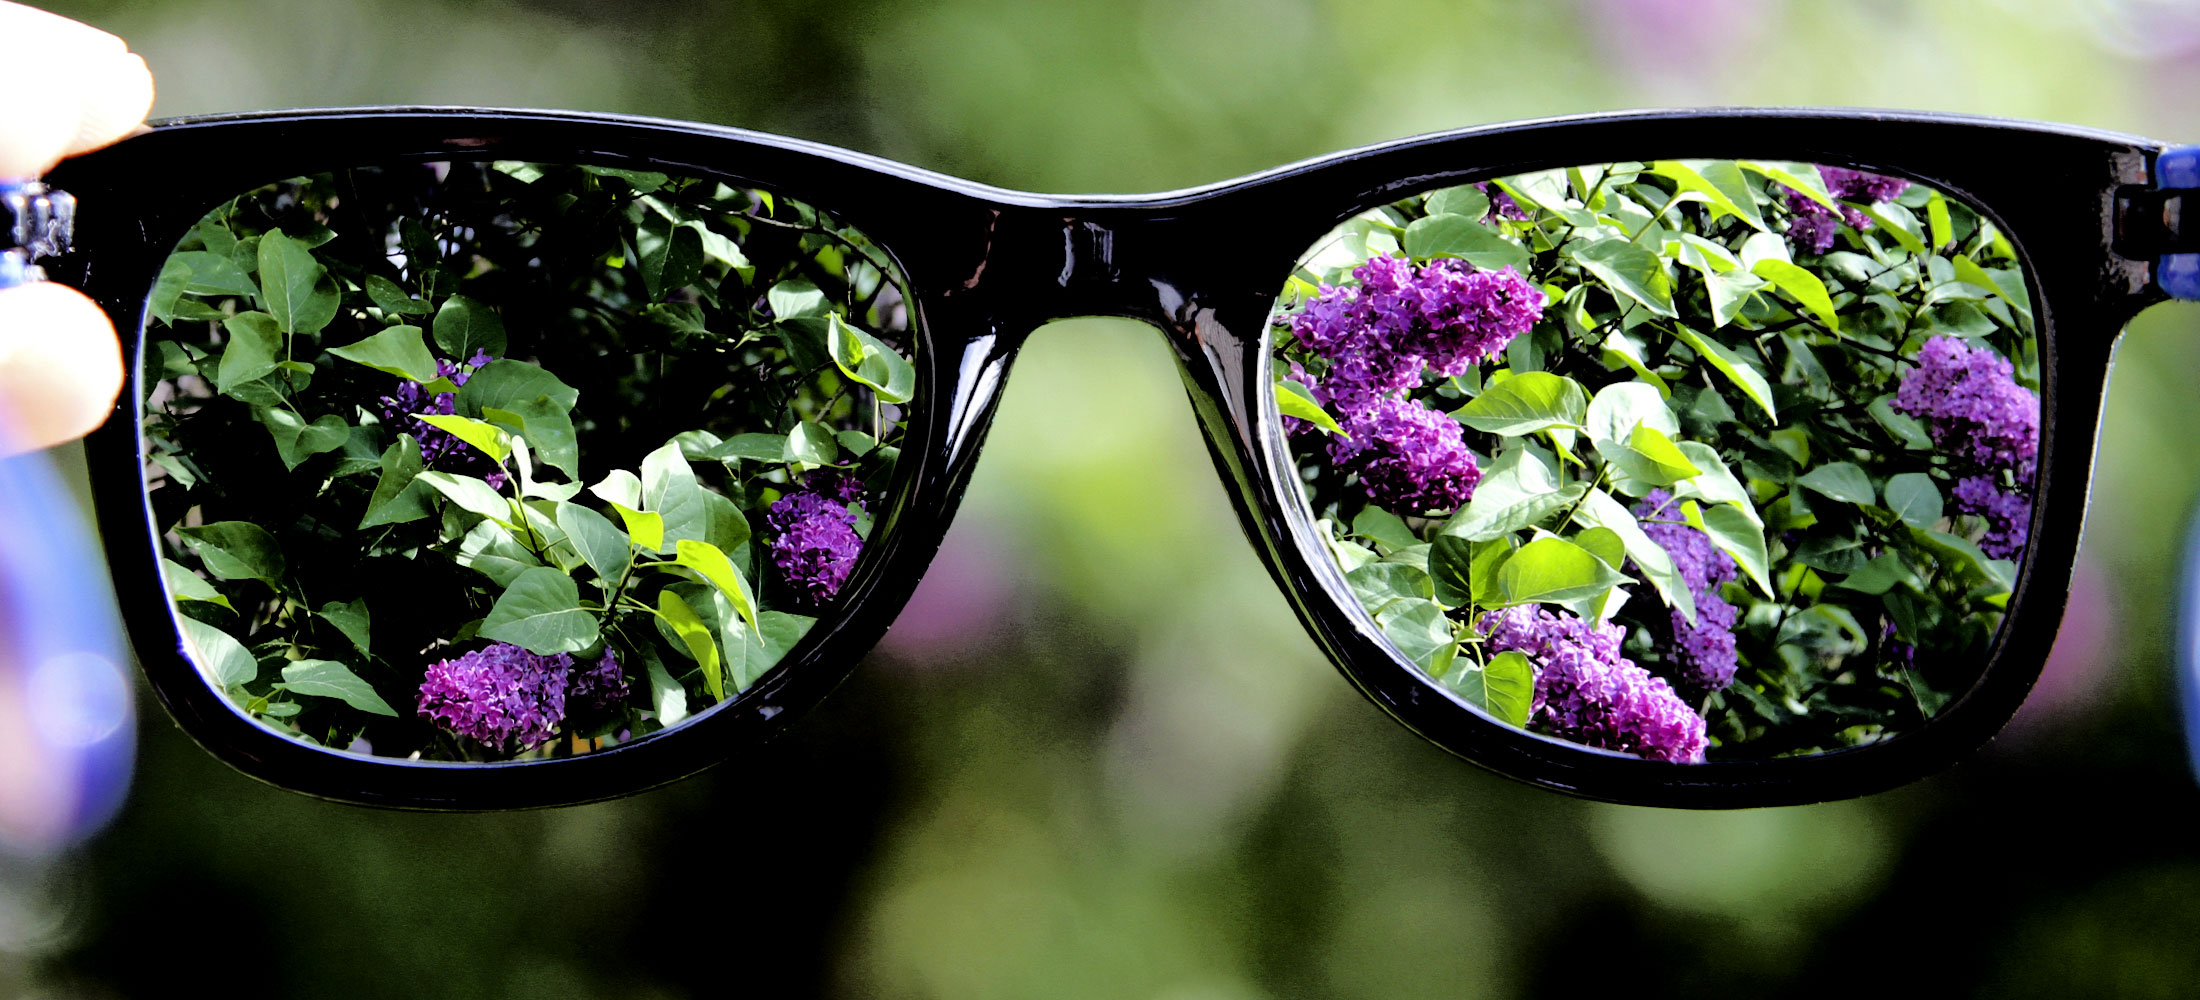 large-image-of-eye-glasses-and-purple-flowers